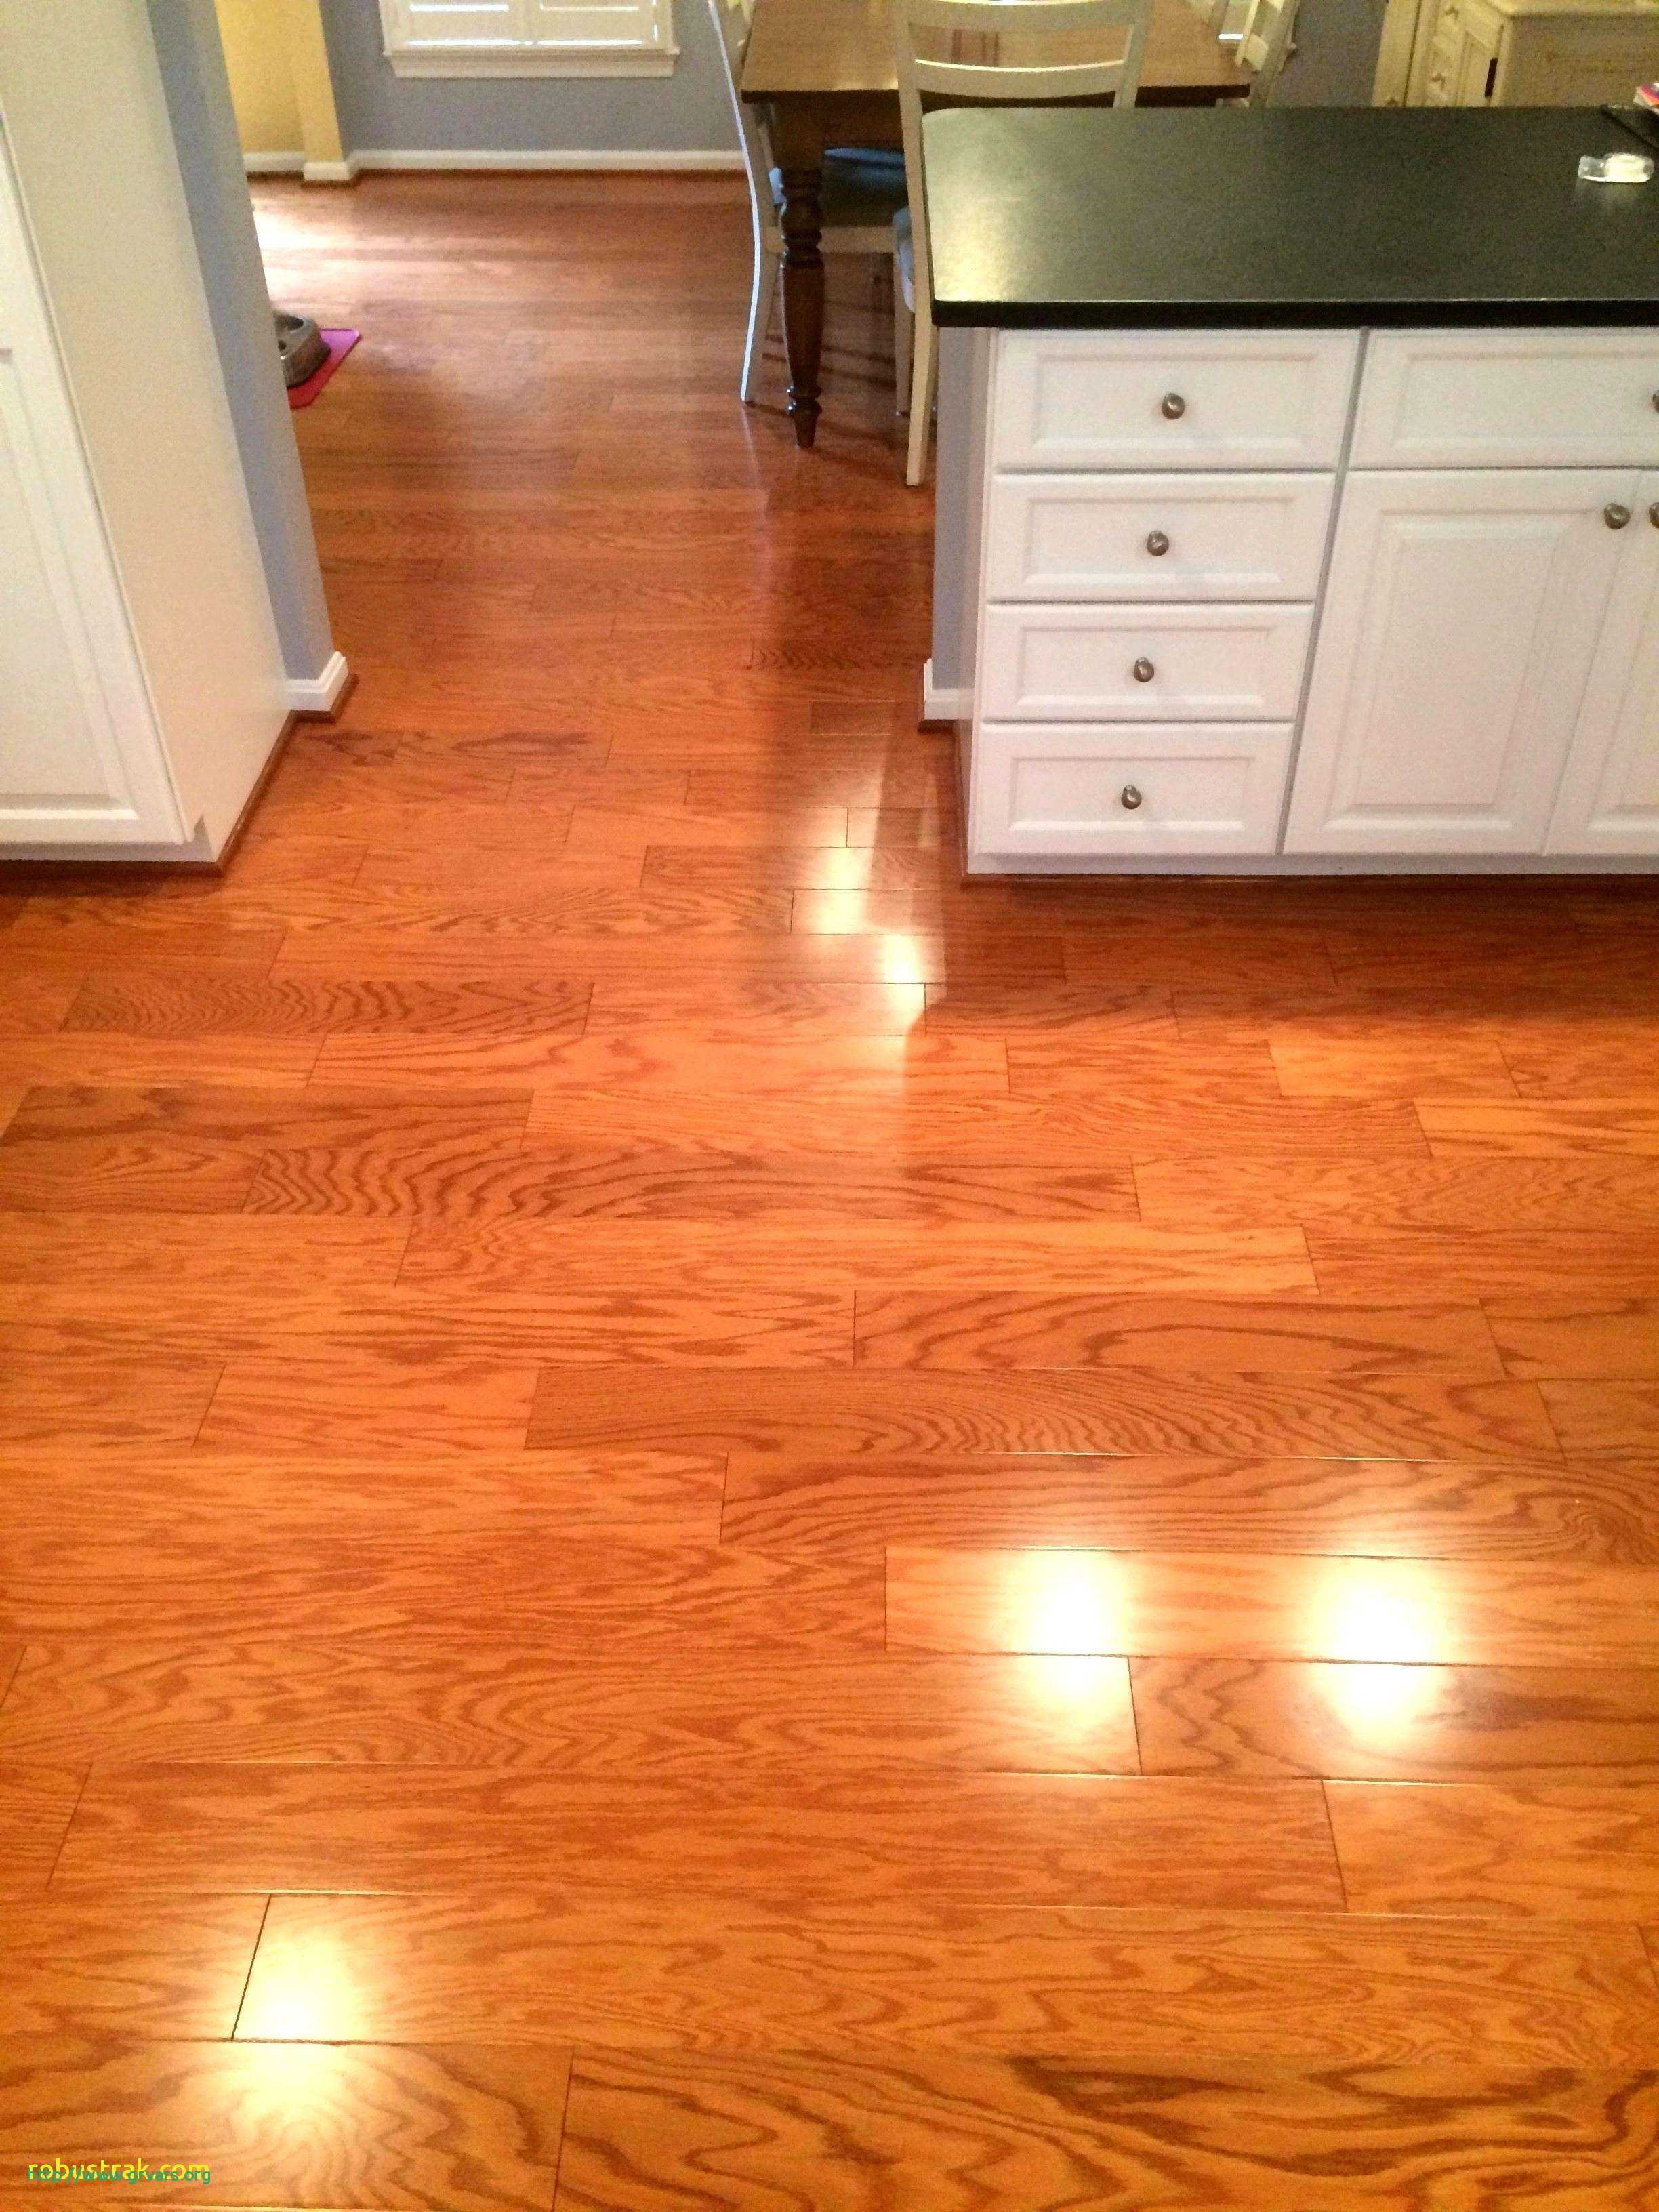 16 attractive Armstrong Hardwood Flooring Company 2021 free download armstrong hardwood flooring company of 23 frais how much is a hardwood floor ideas blog with regard to hardwood floors in the kitchen fresh where to buy hardwood flooring inspirational 0d gr